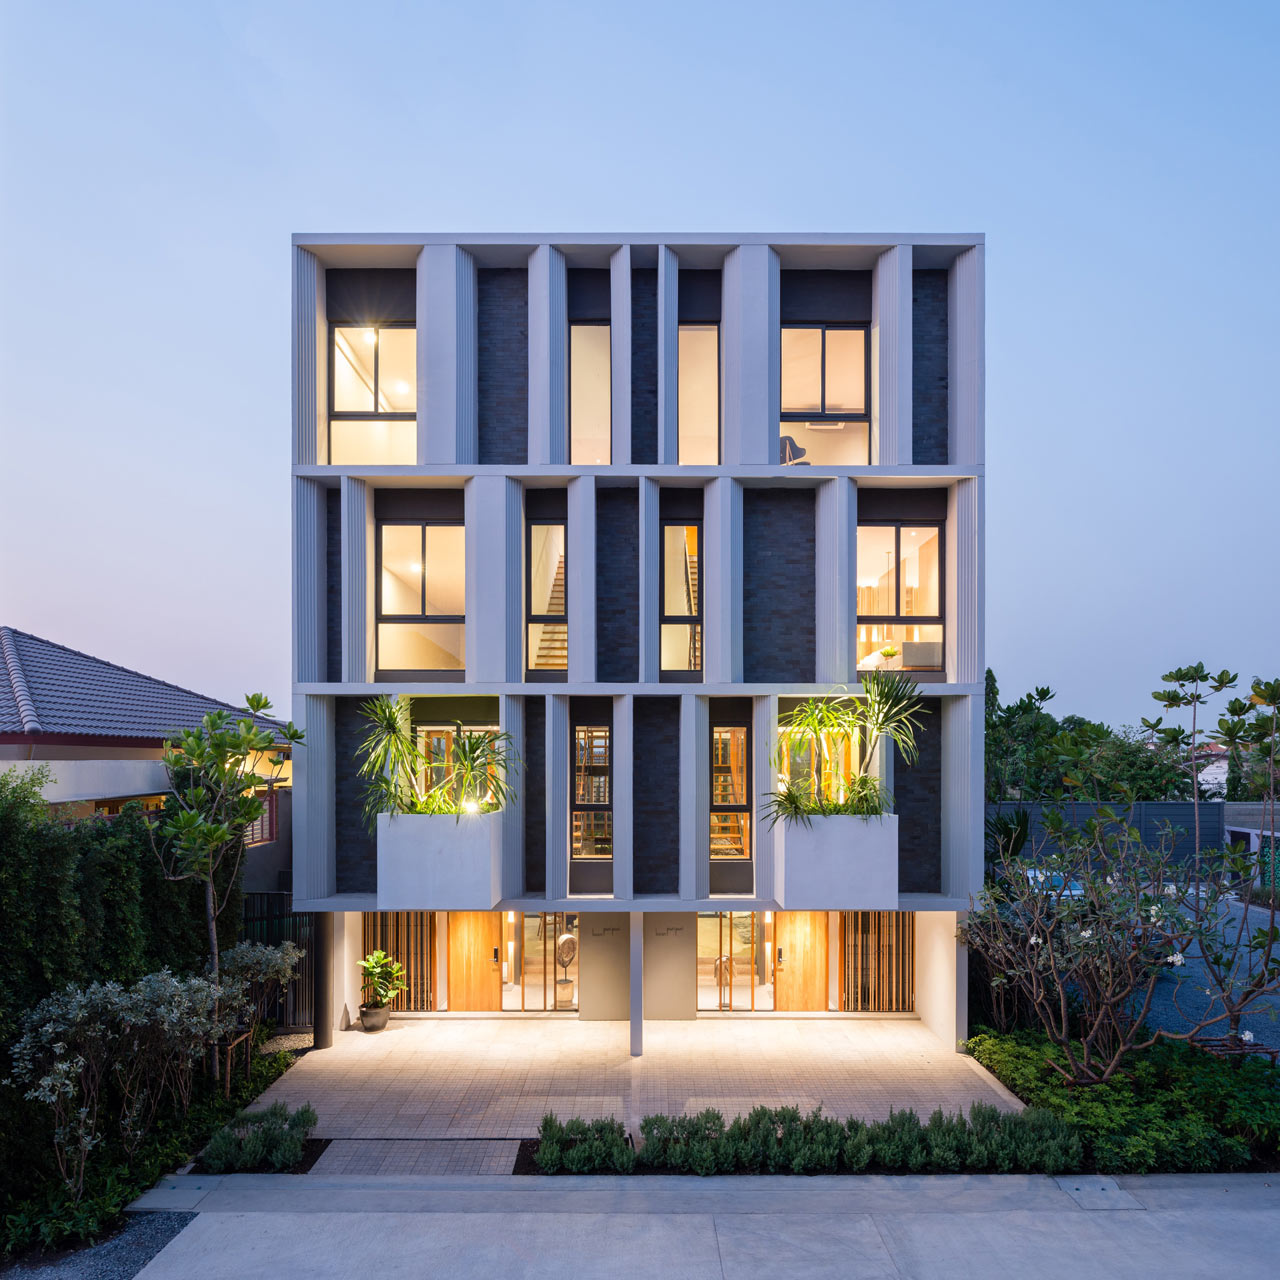 Home Design Ideas Architecture: A Modern Townhouse With A Private Garden In Bangkok